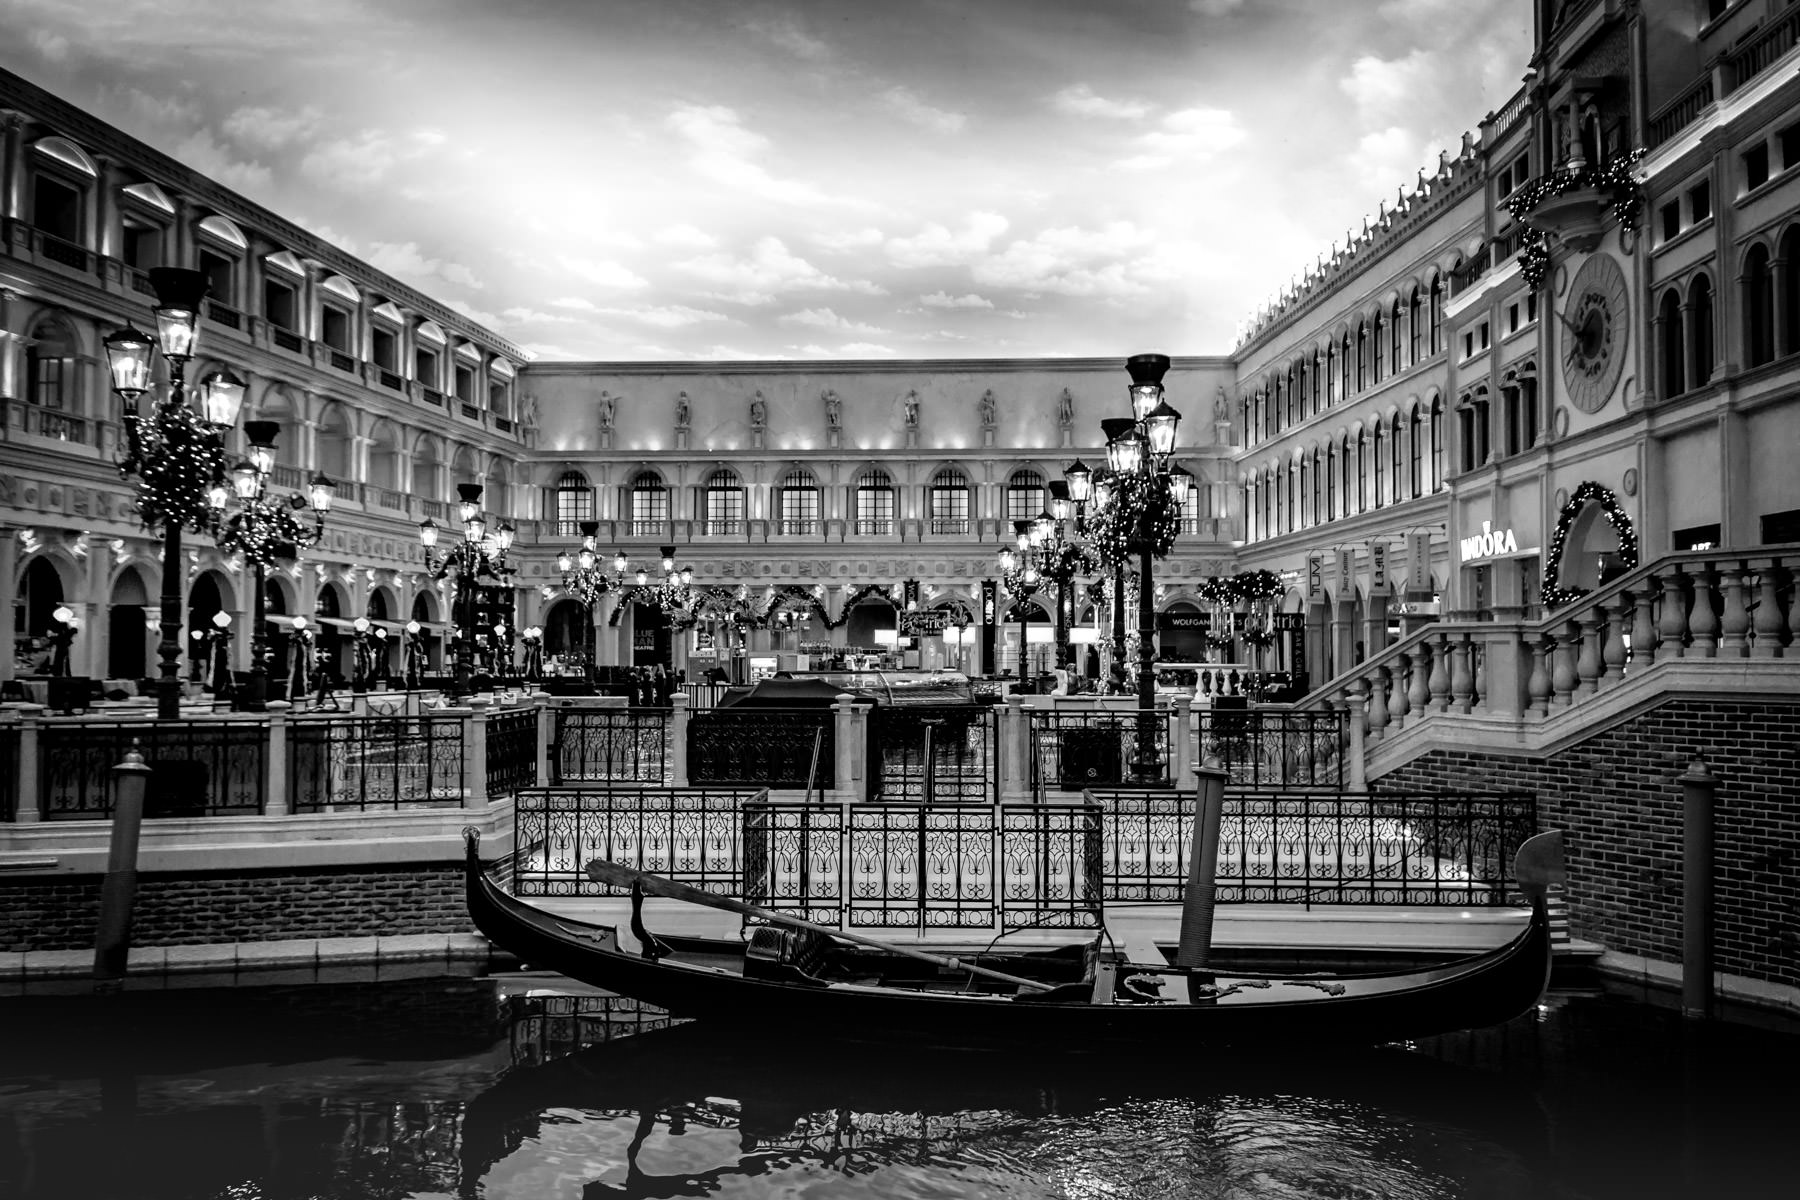 A gondola floats in a canal inside the Grand Canal Shoppes at The Venetian, Las Vegas.